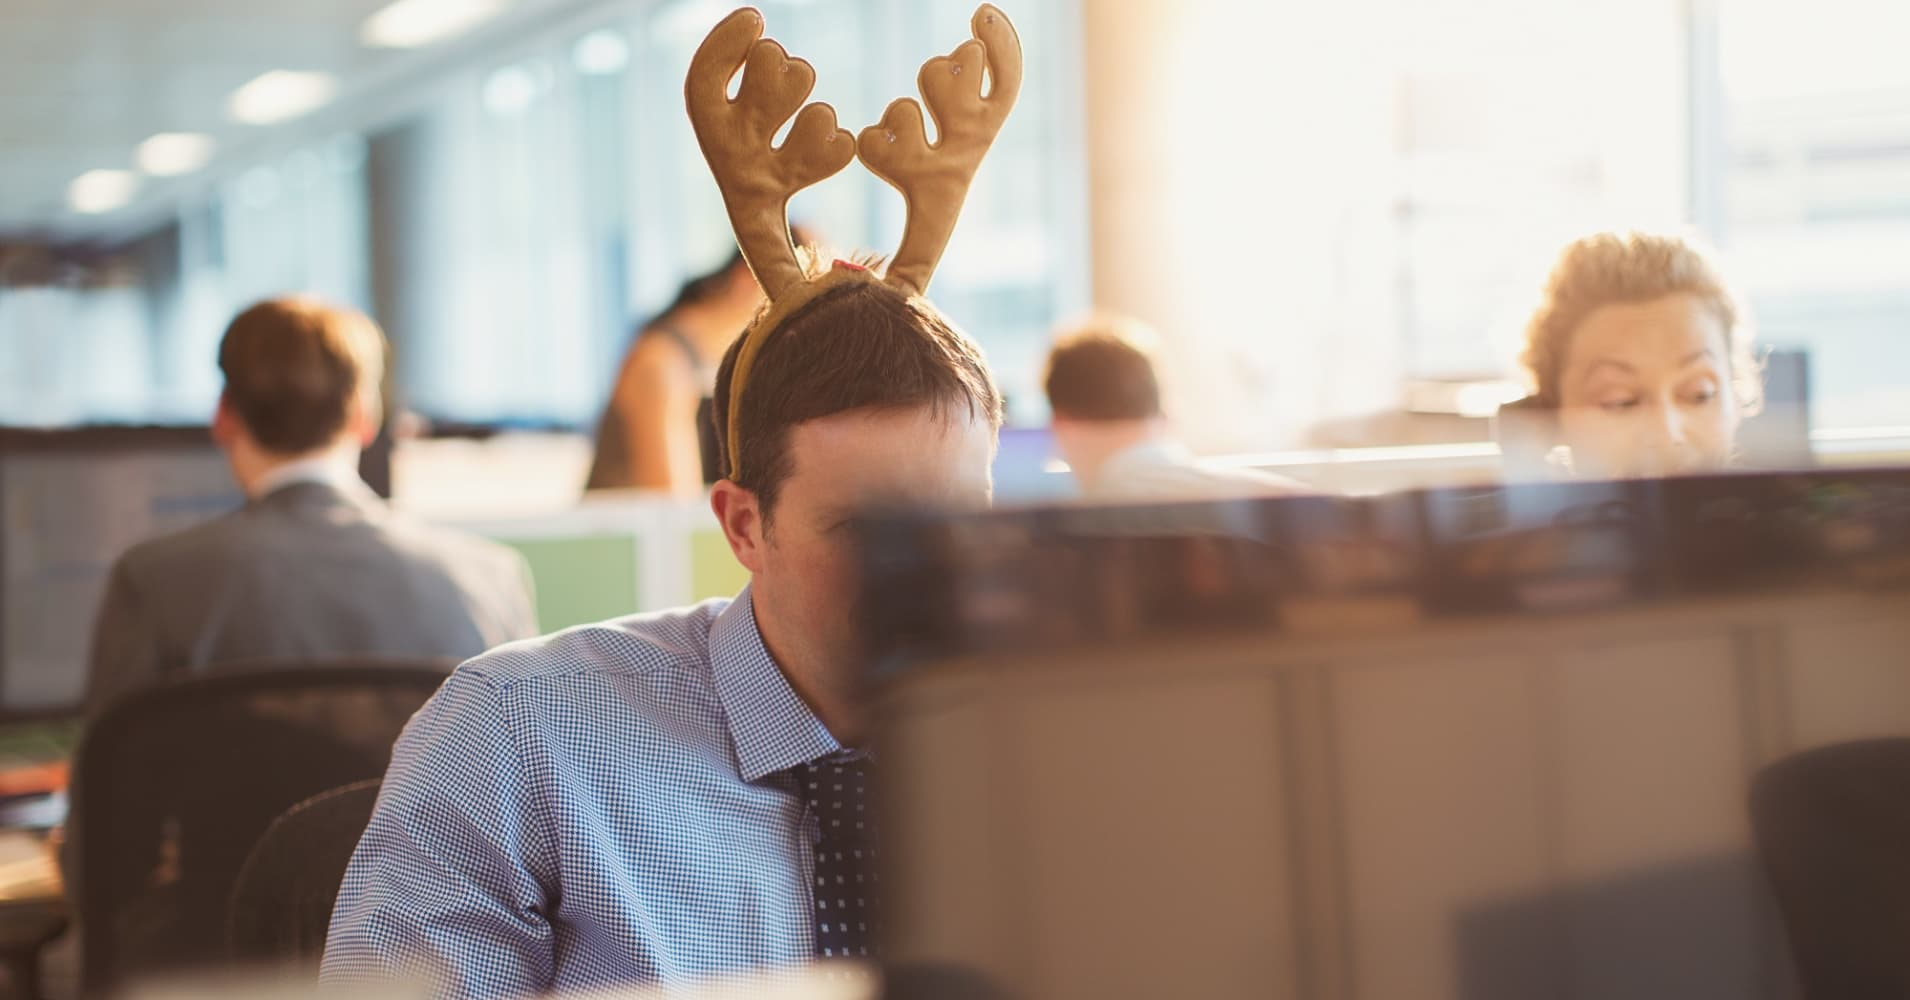 12 great holiday gifts for your coworkers that cost less than $20